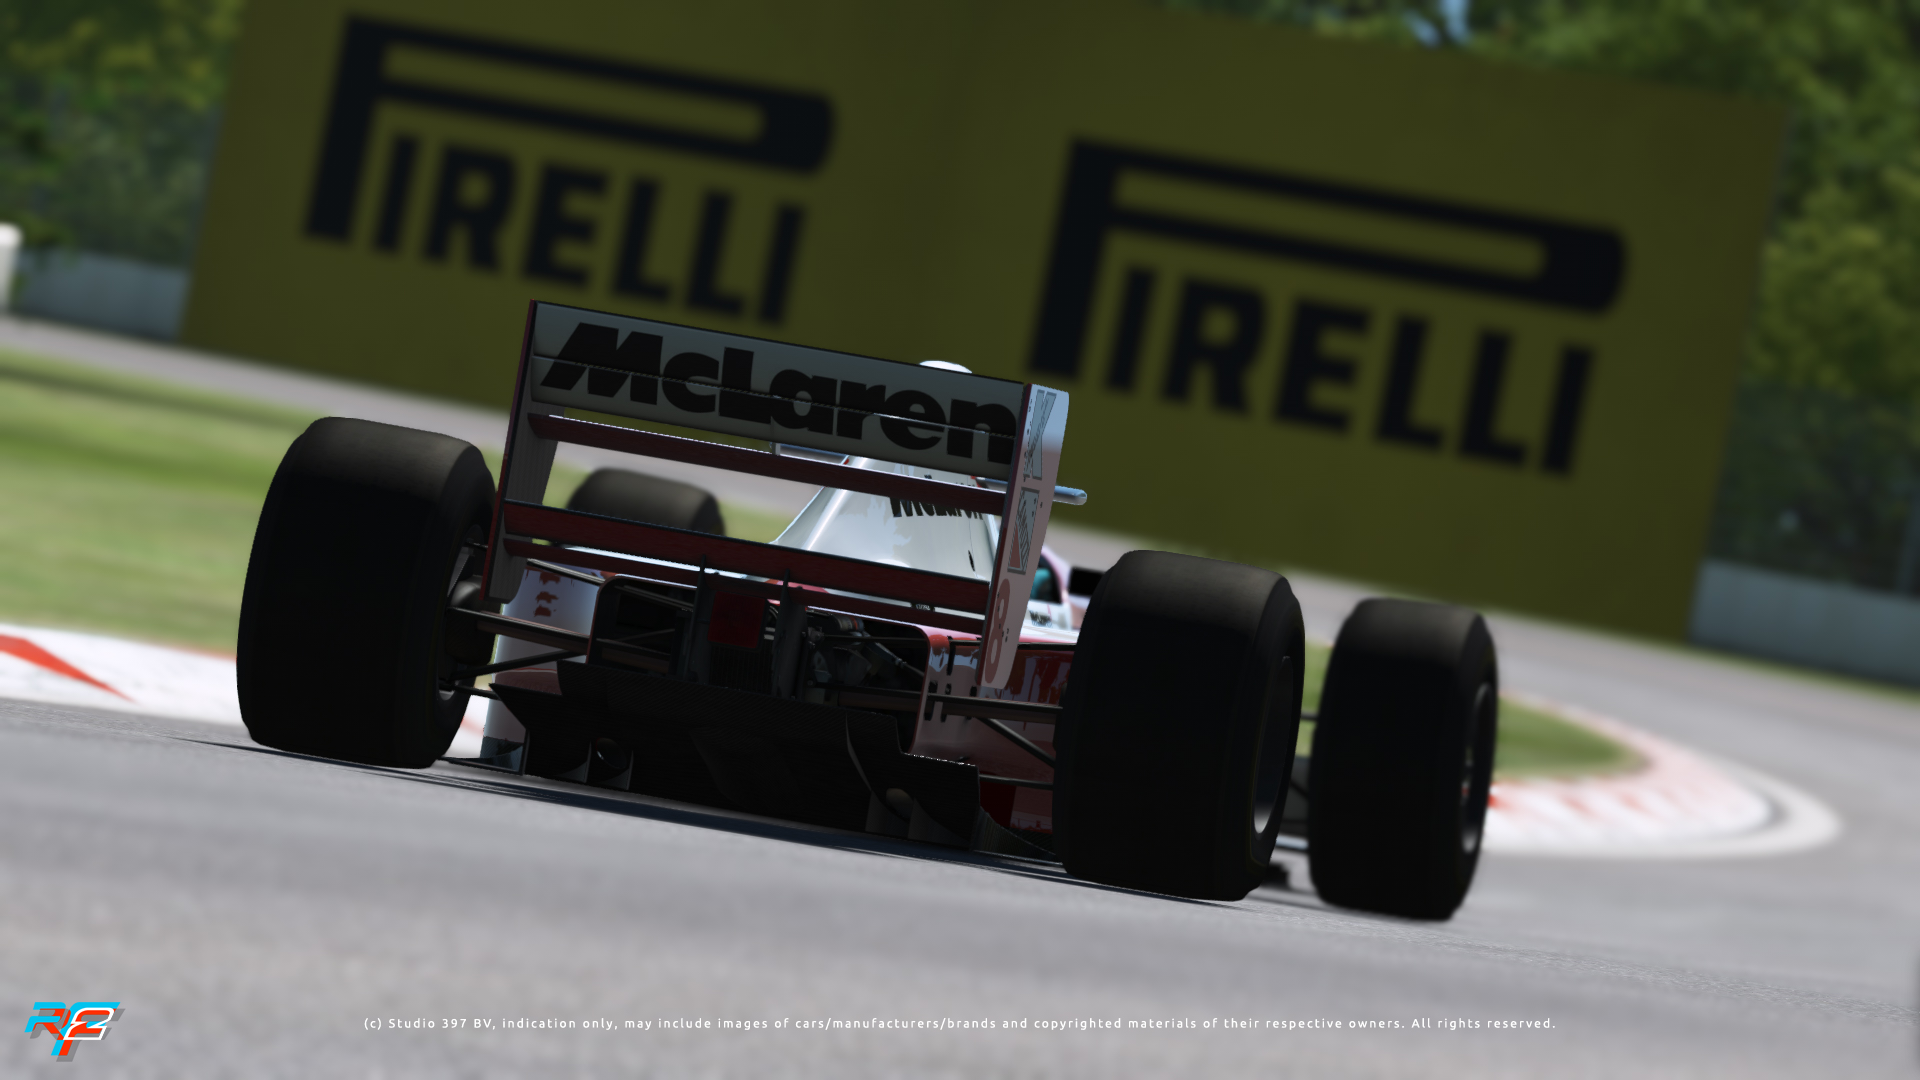 McLaren_MP48_pbr_screenshot_02.jpg